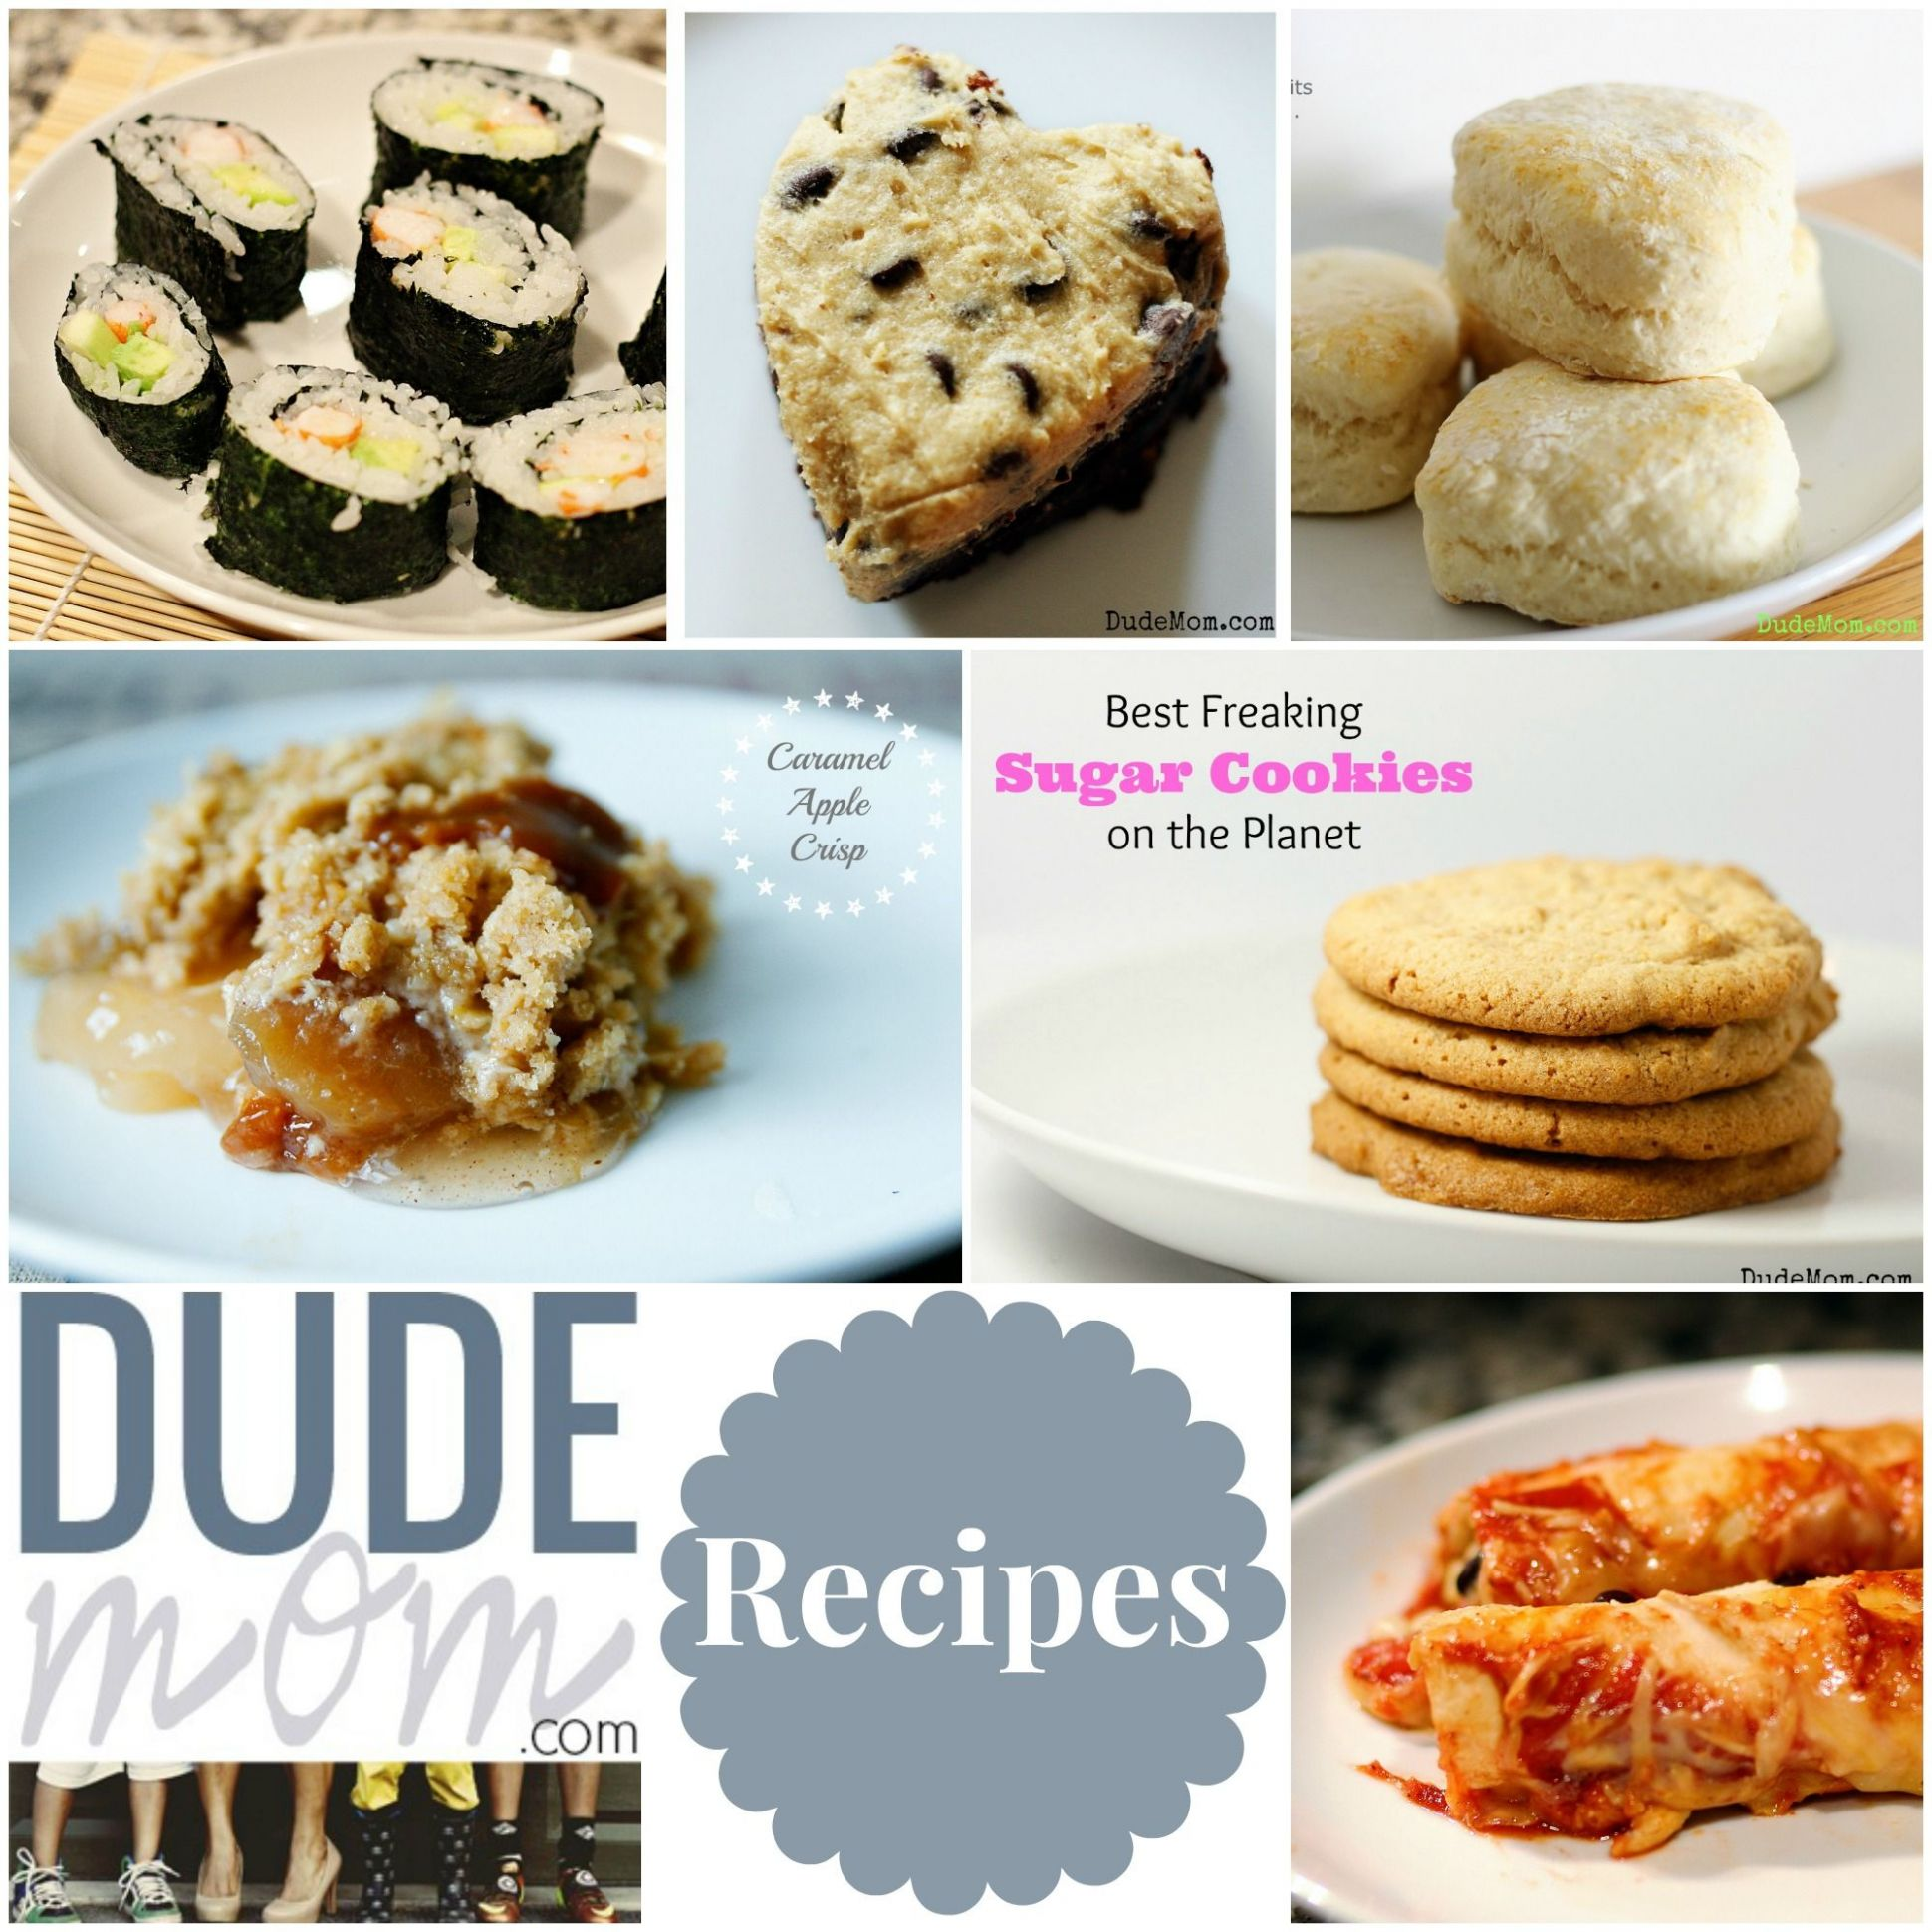 Quick, easy, delicious recipes for families. | Recipes, Easy meals ..